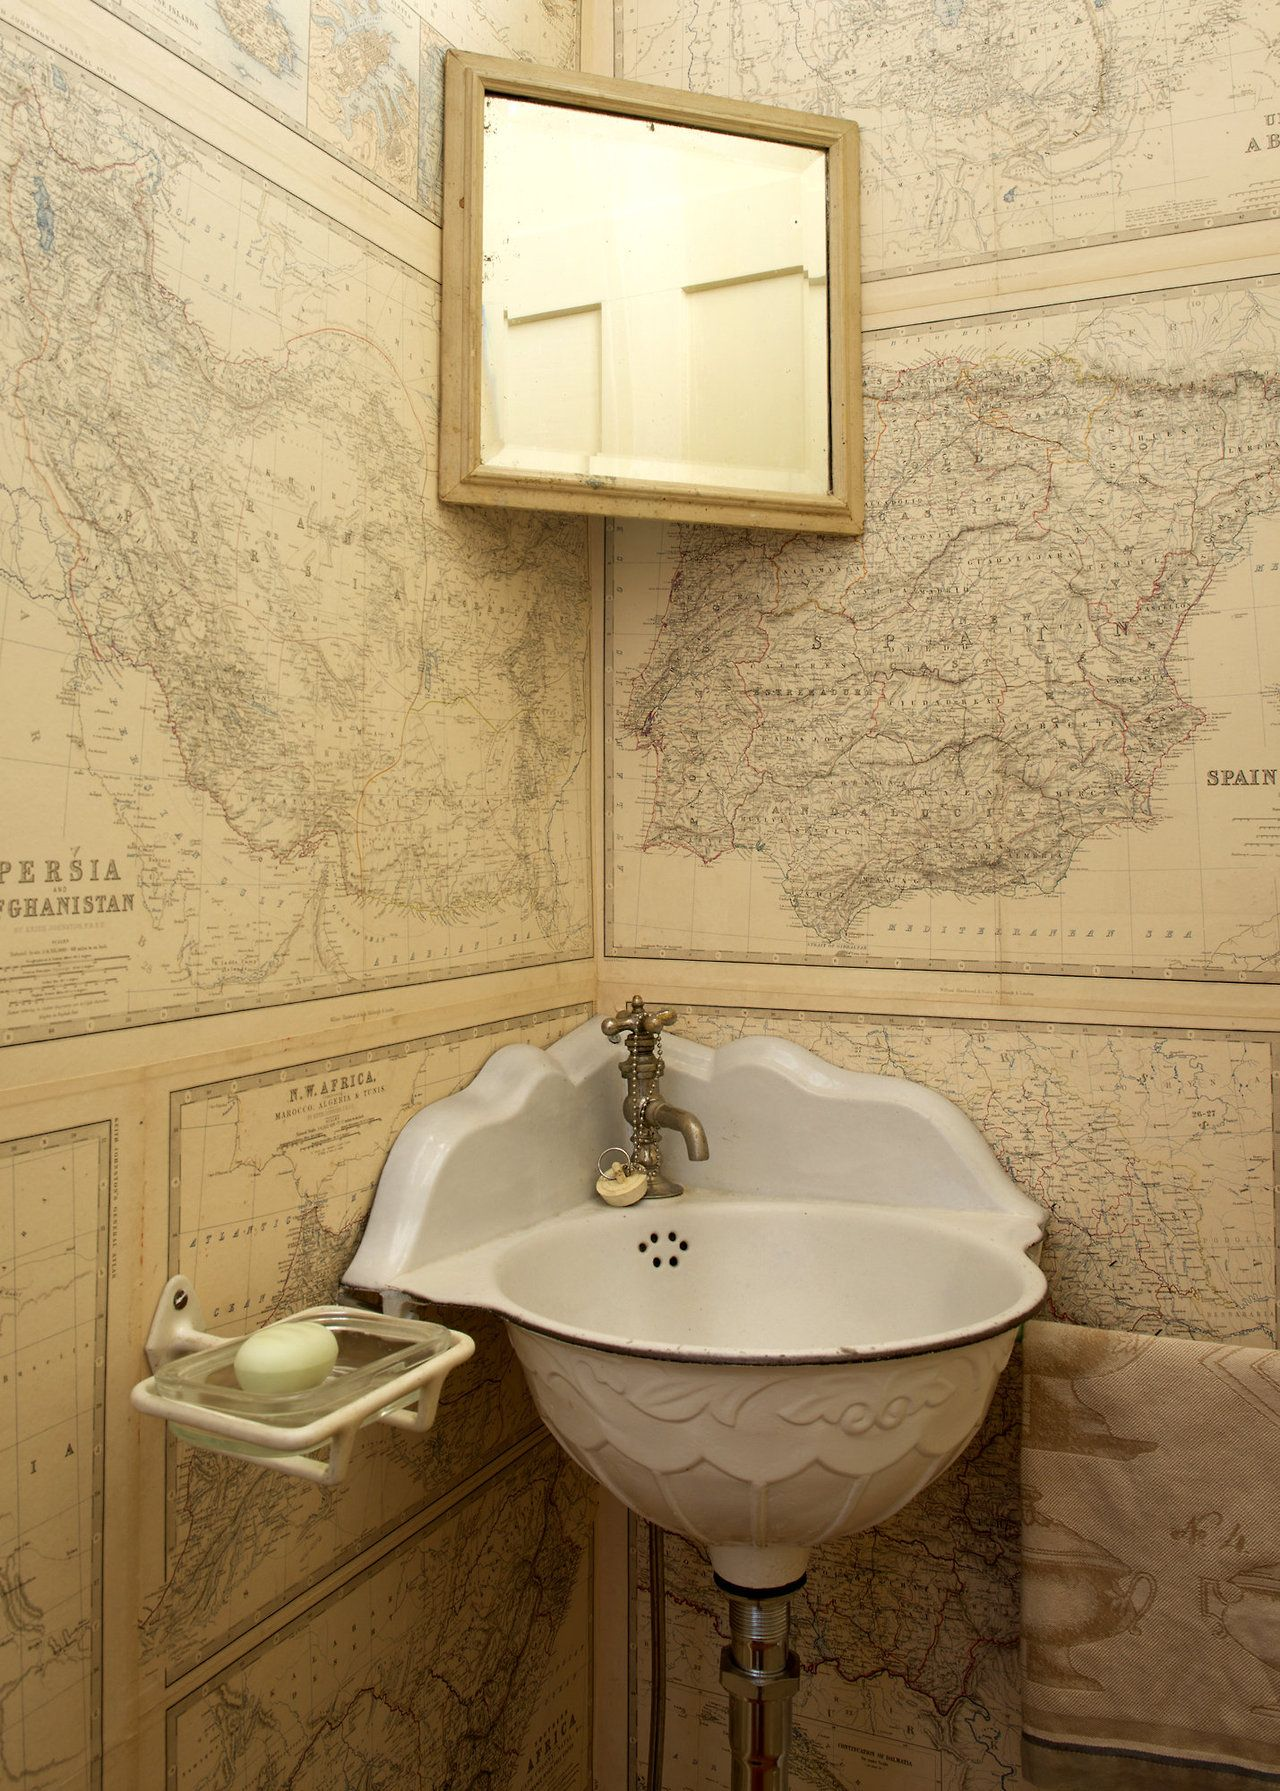 Ldellfood Design Powder Room Papered In Old Maps Via The Ny Times Bano Victoriano Lavabos En Esquina Aseo